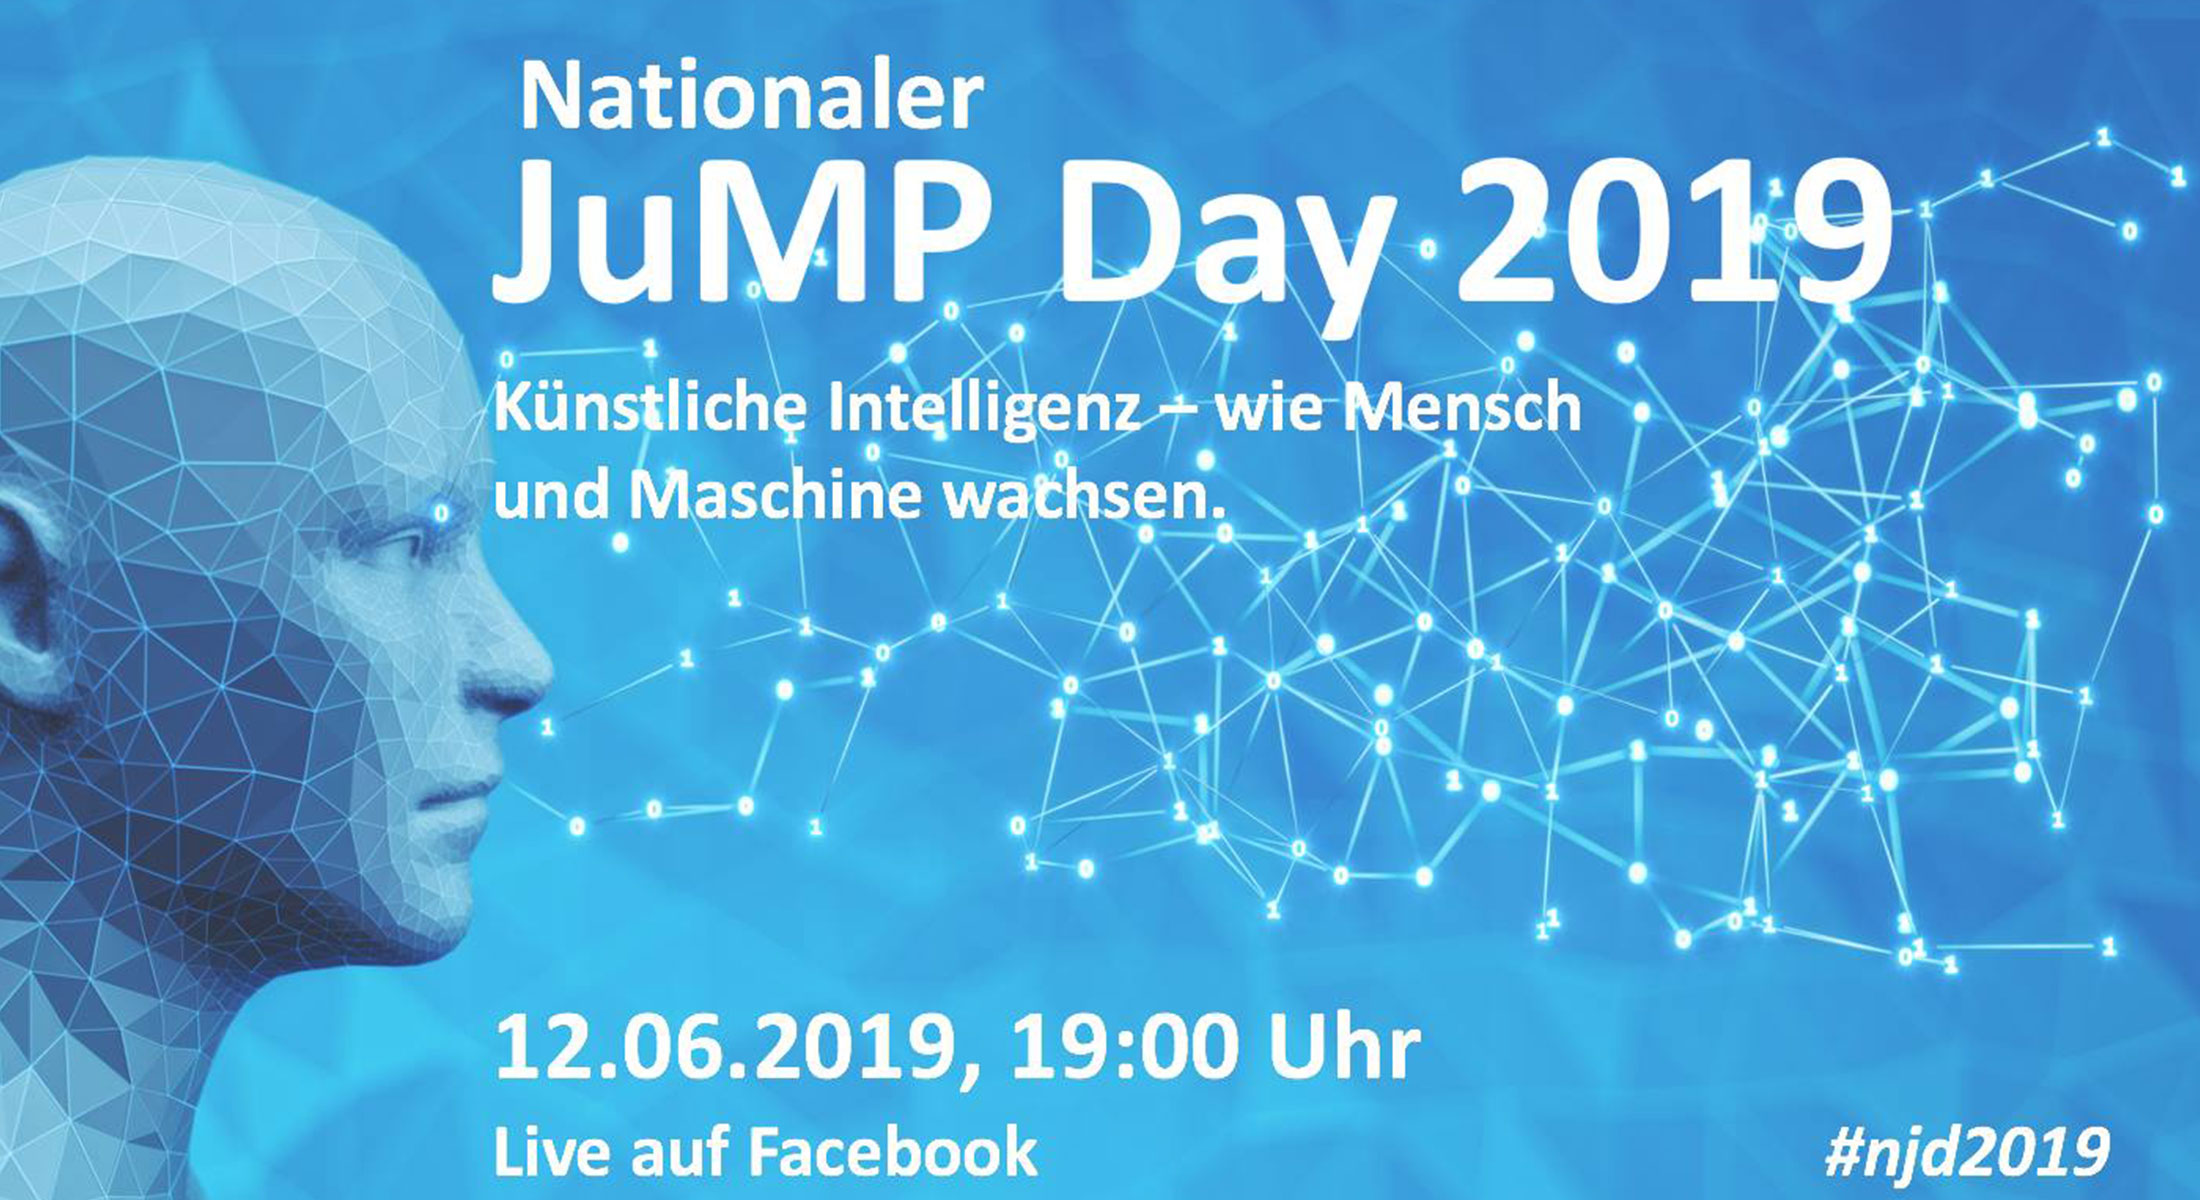 Marketing Club Region Stuttgart-Heilbronn Veranstaltung: Nationaler JuMP Day